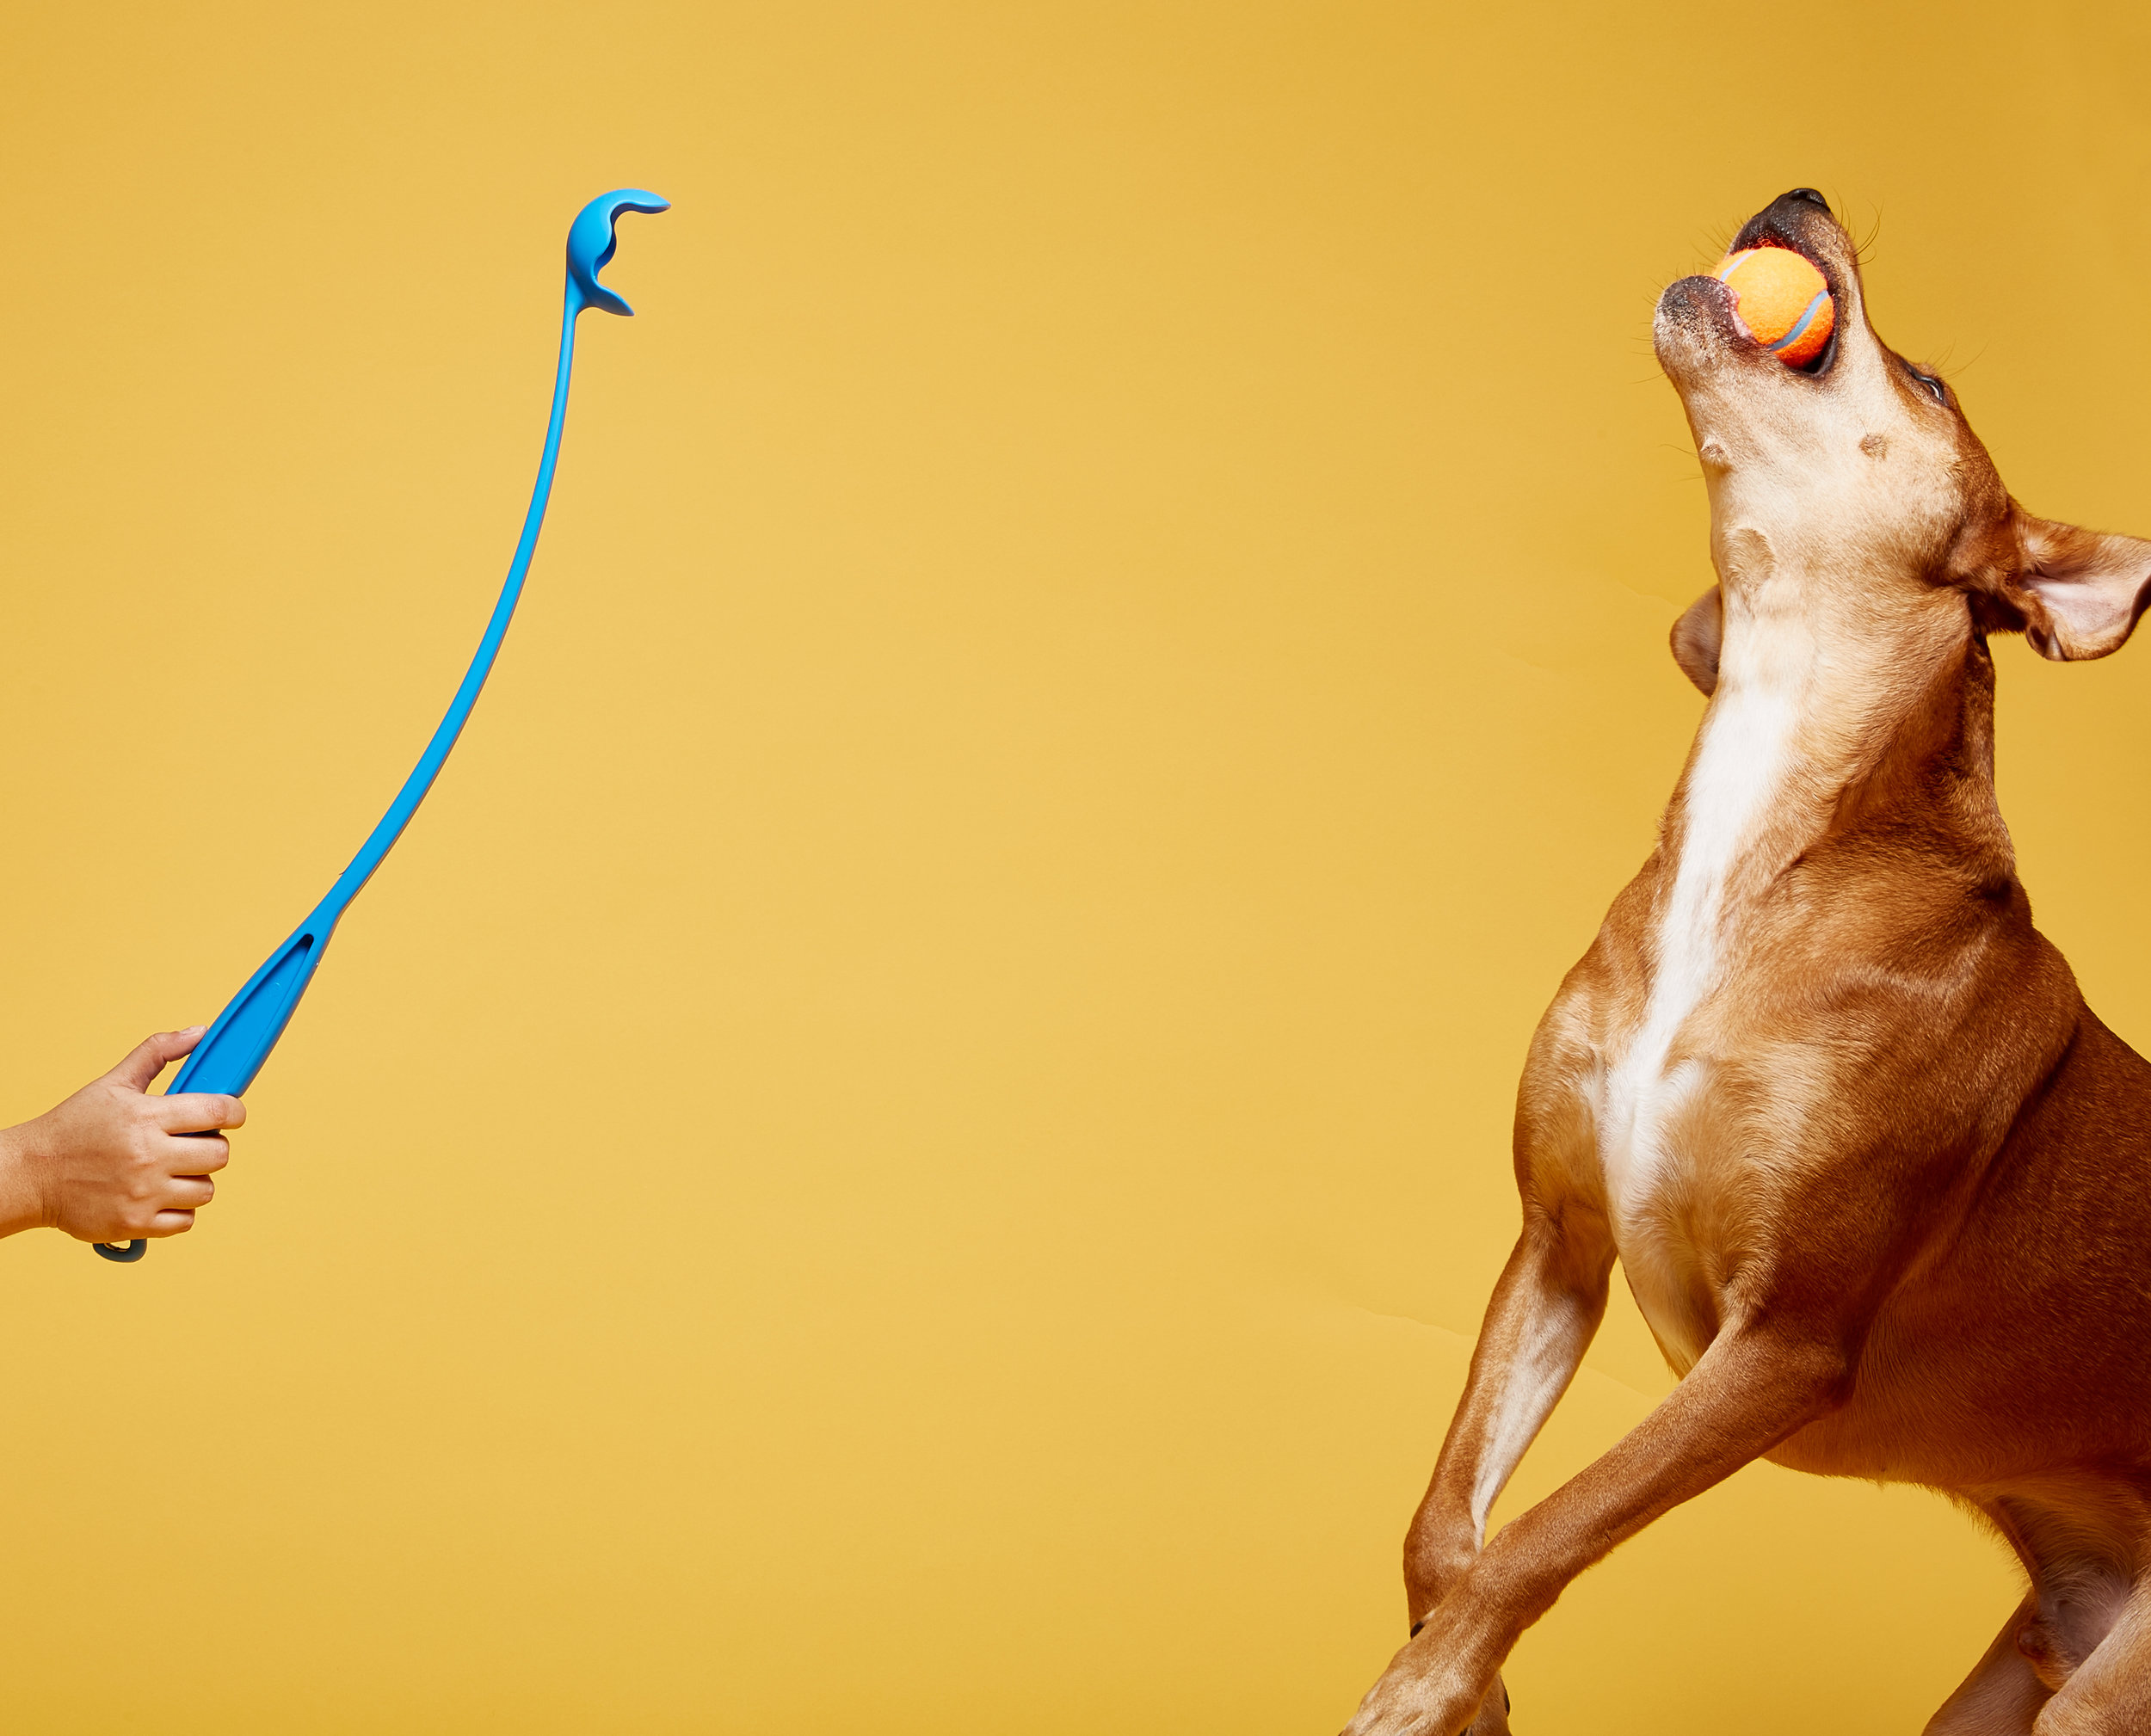 A commercial, lifestyle, advertising image of a dog toy and a brown dog - taken by Javier Edwards, in Miami, Florida.